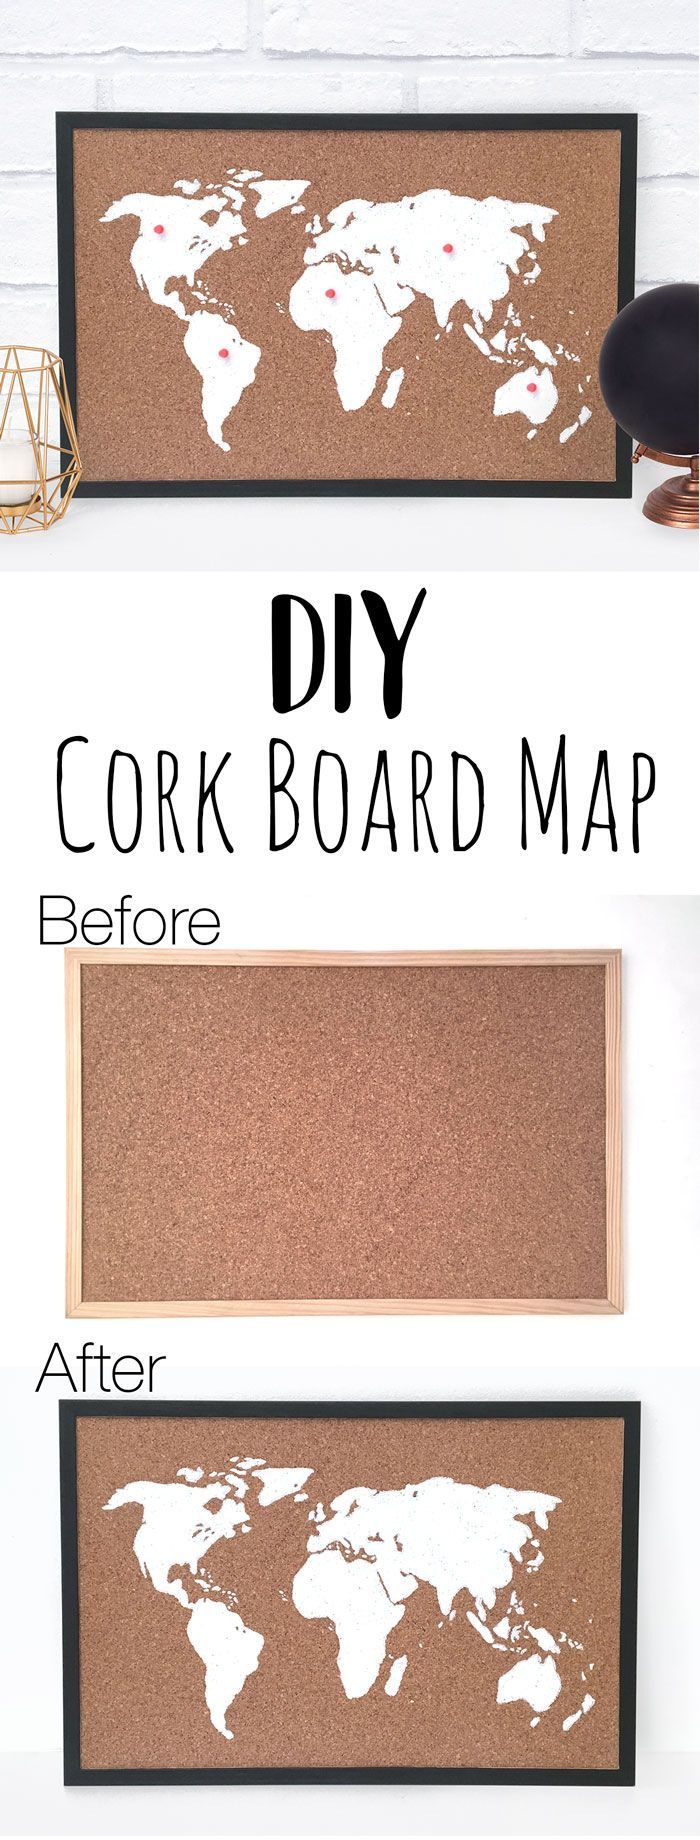 This DIY cork board map is a great home decor craft to make. It's a perfect handmade gift for travellers and adventure lovers. You can also use it as a stylish bulletin board. This DIY map craft is easy to make and looks great in the home!